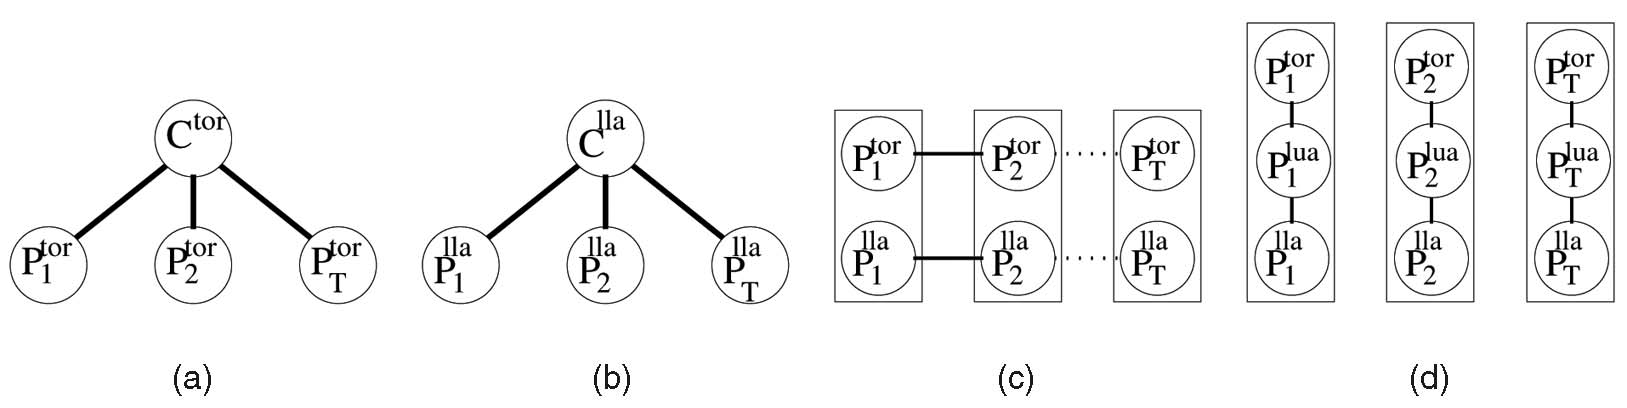 70 IEEE TRANSACTIONS ON PATTERN ANALYSIS AND MACHINE INTELLIGENCE, VOL. 29, NO. 1, JANUARY 2007 Fig. 9. A set of trees for loopy inference on our temporal pictorial structure.